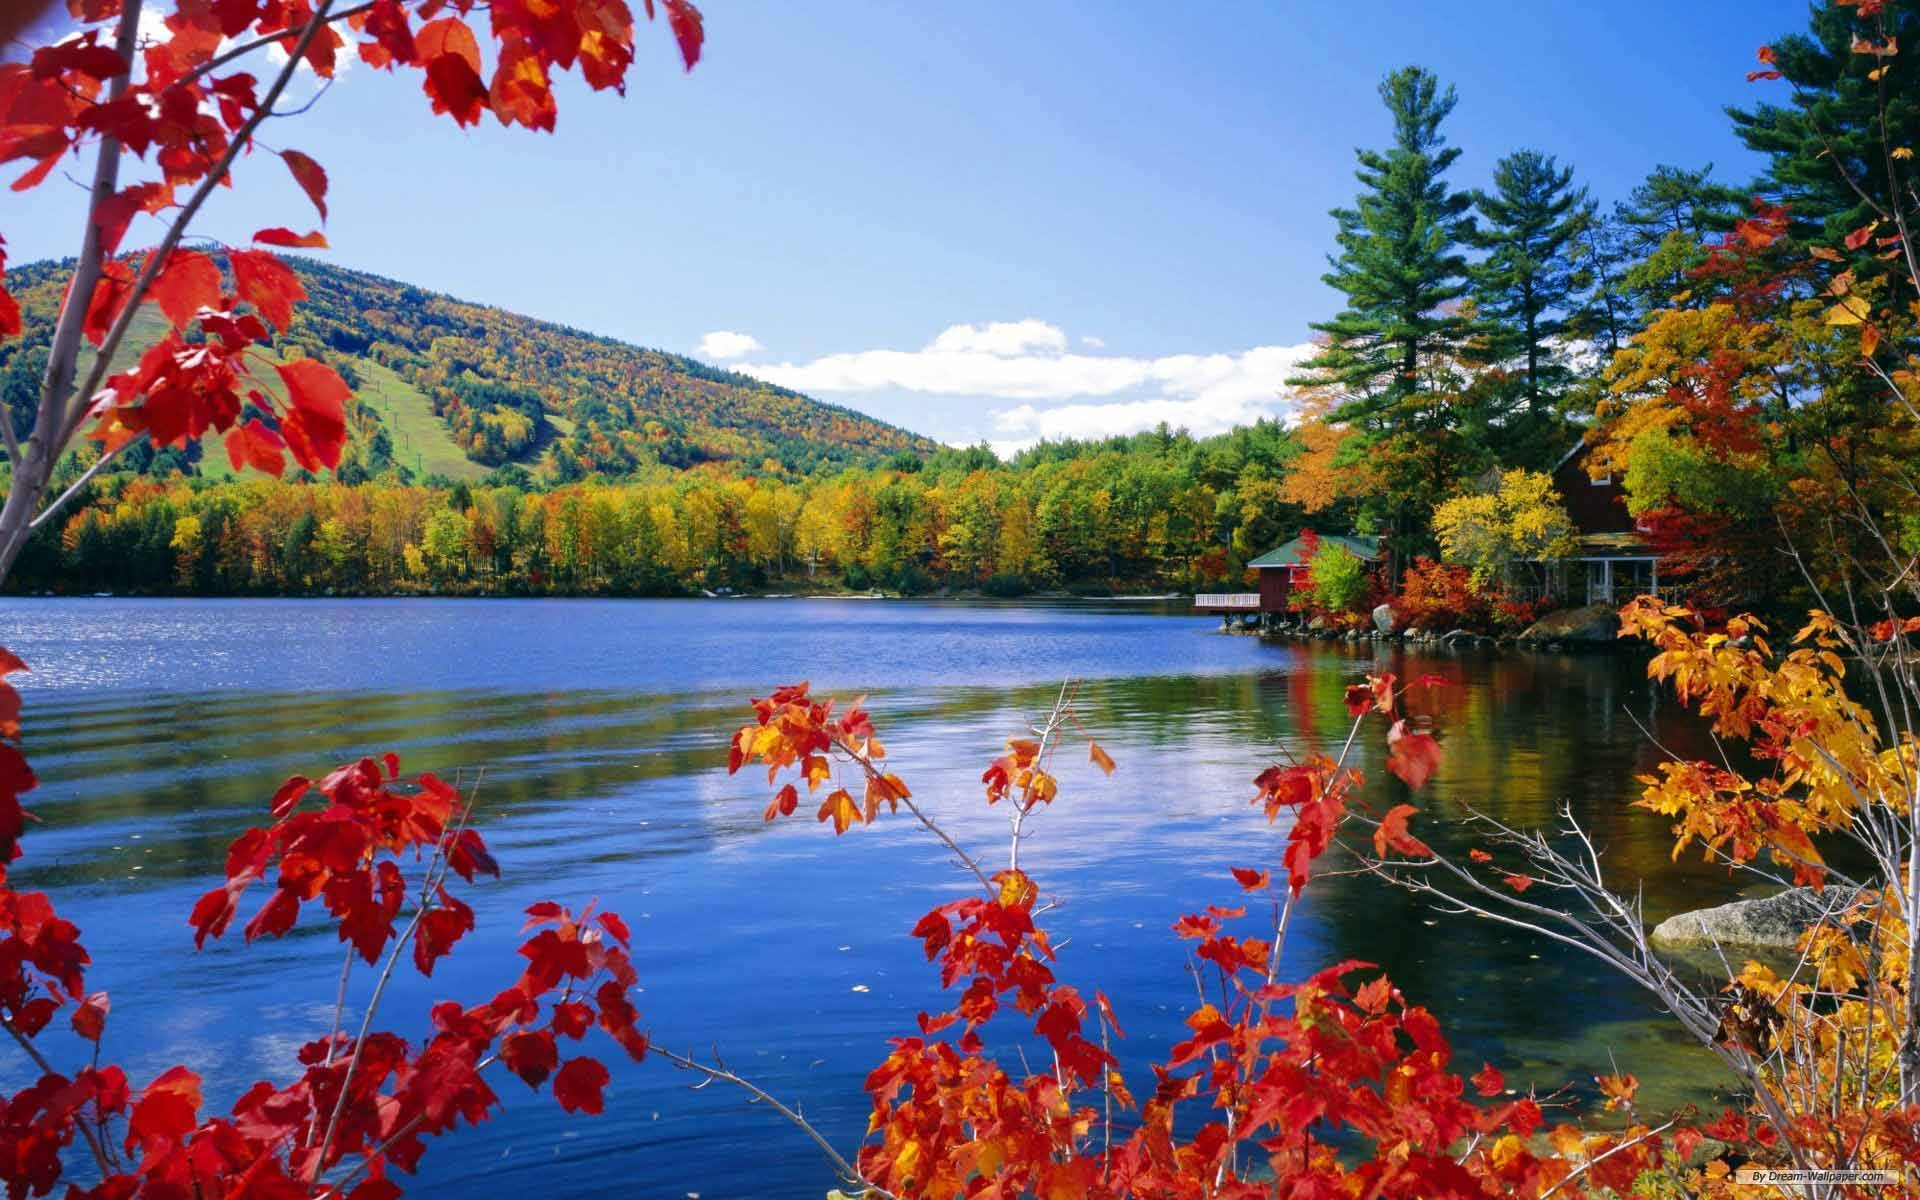 Fall colors on lake, Trees changing color in the fall around a small ...